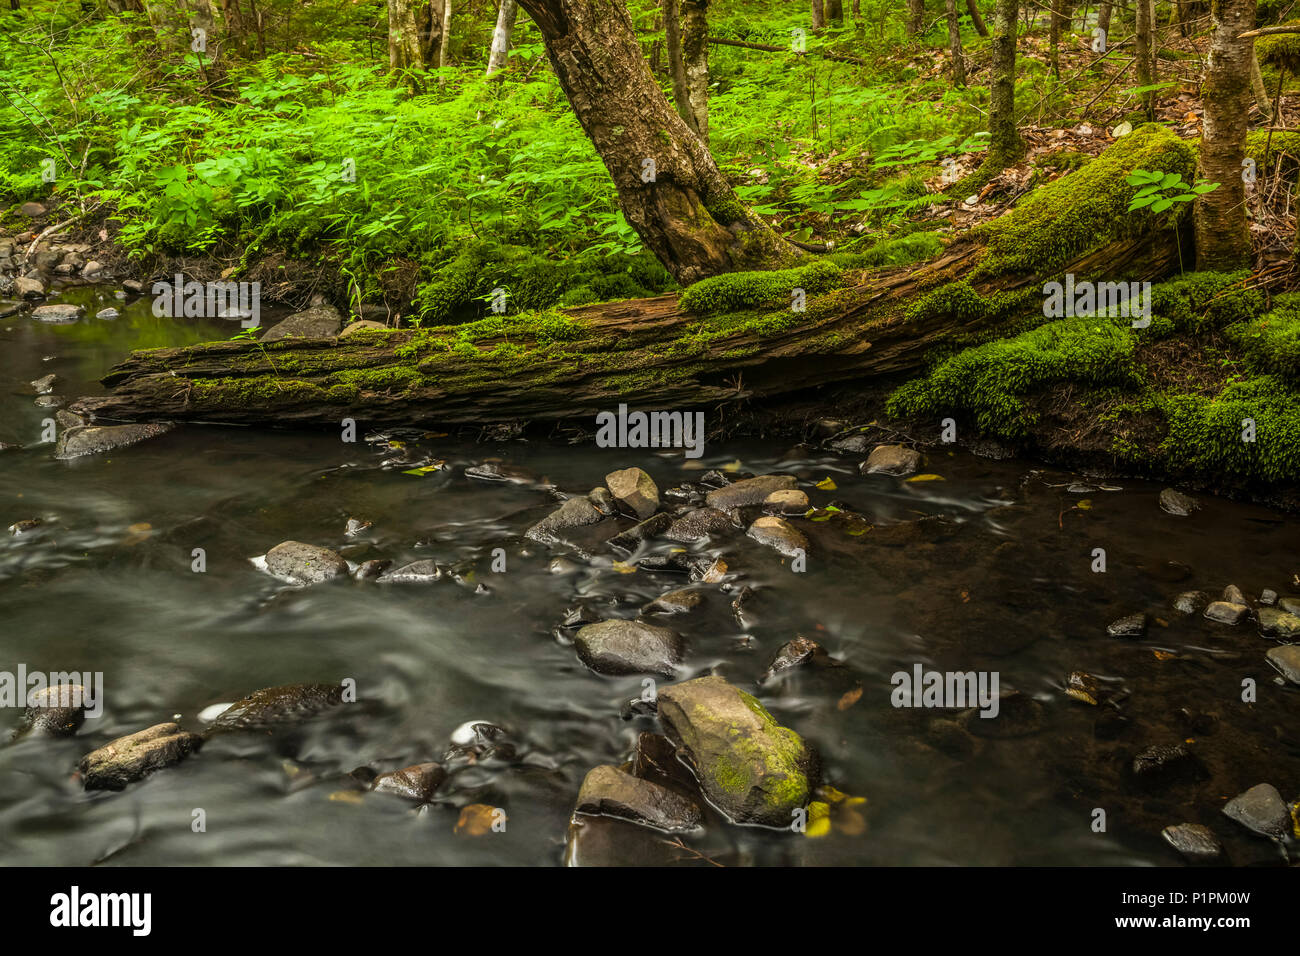 A moss covered old tree trunk half rests in a brook in a forest in Middle Sackville; Nova Scotia, Canada - Stock Image